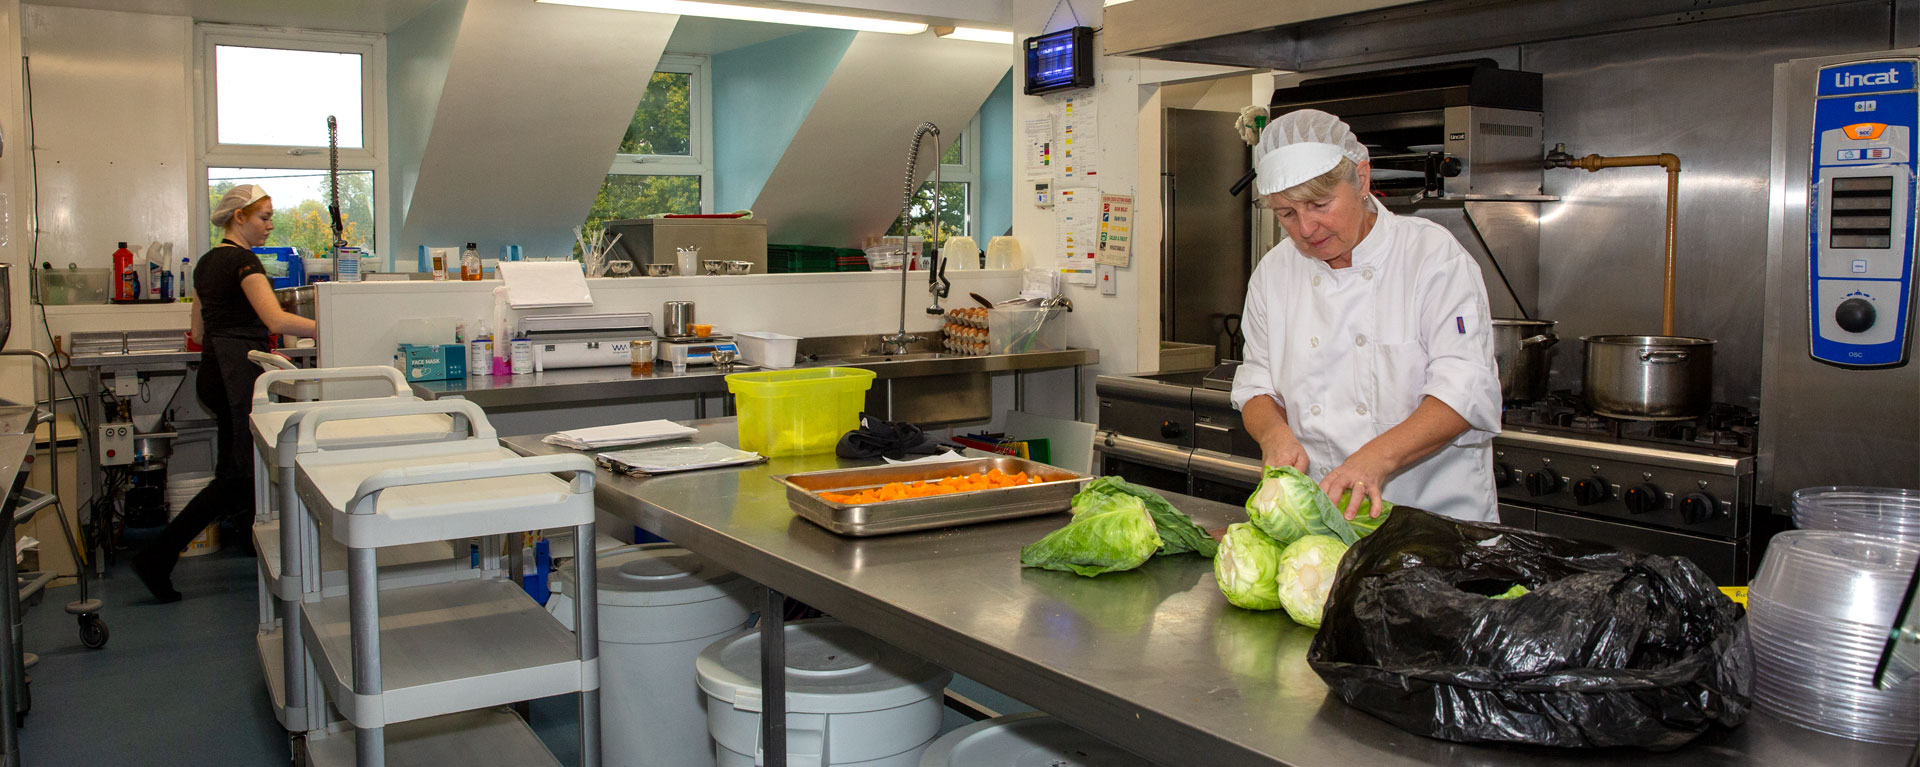 Laurel Care home's chef preparing a fresh meal